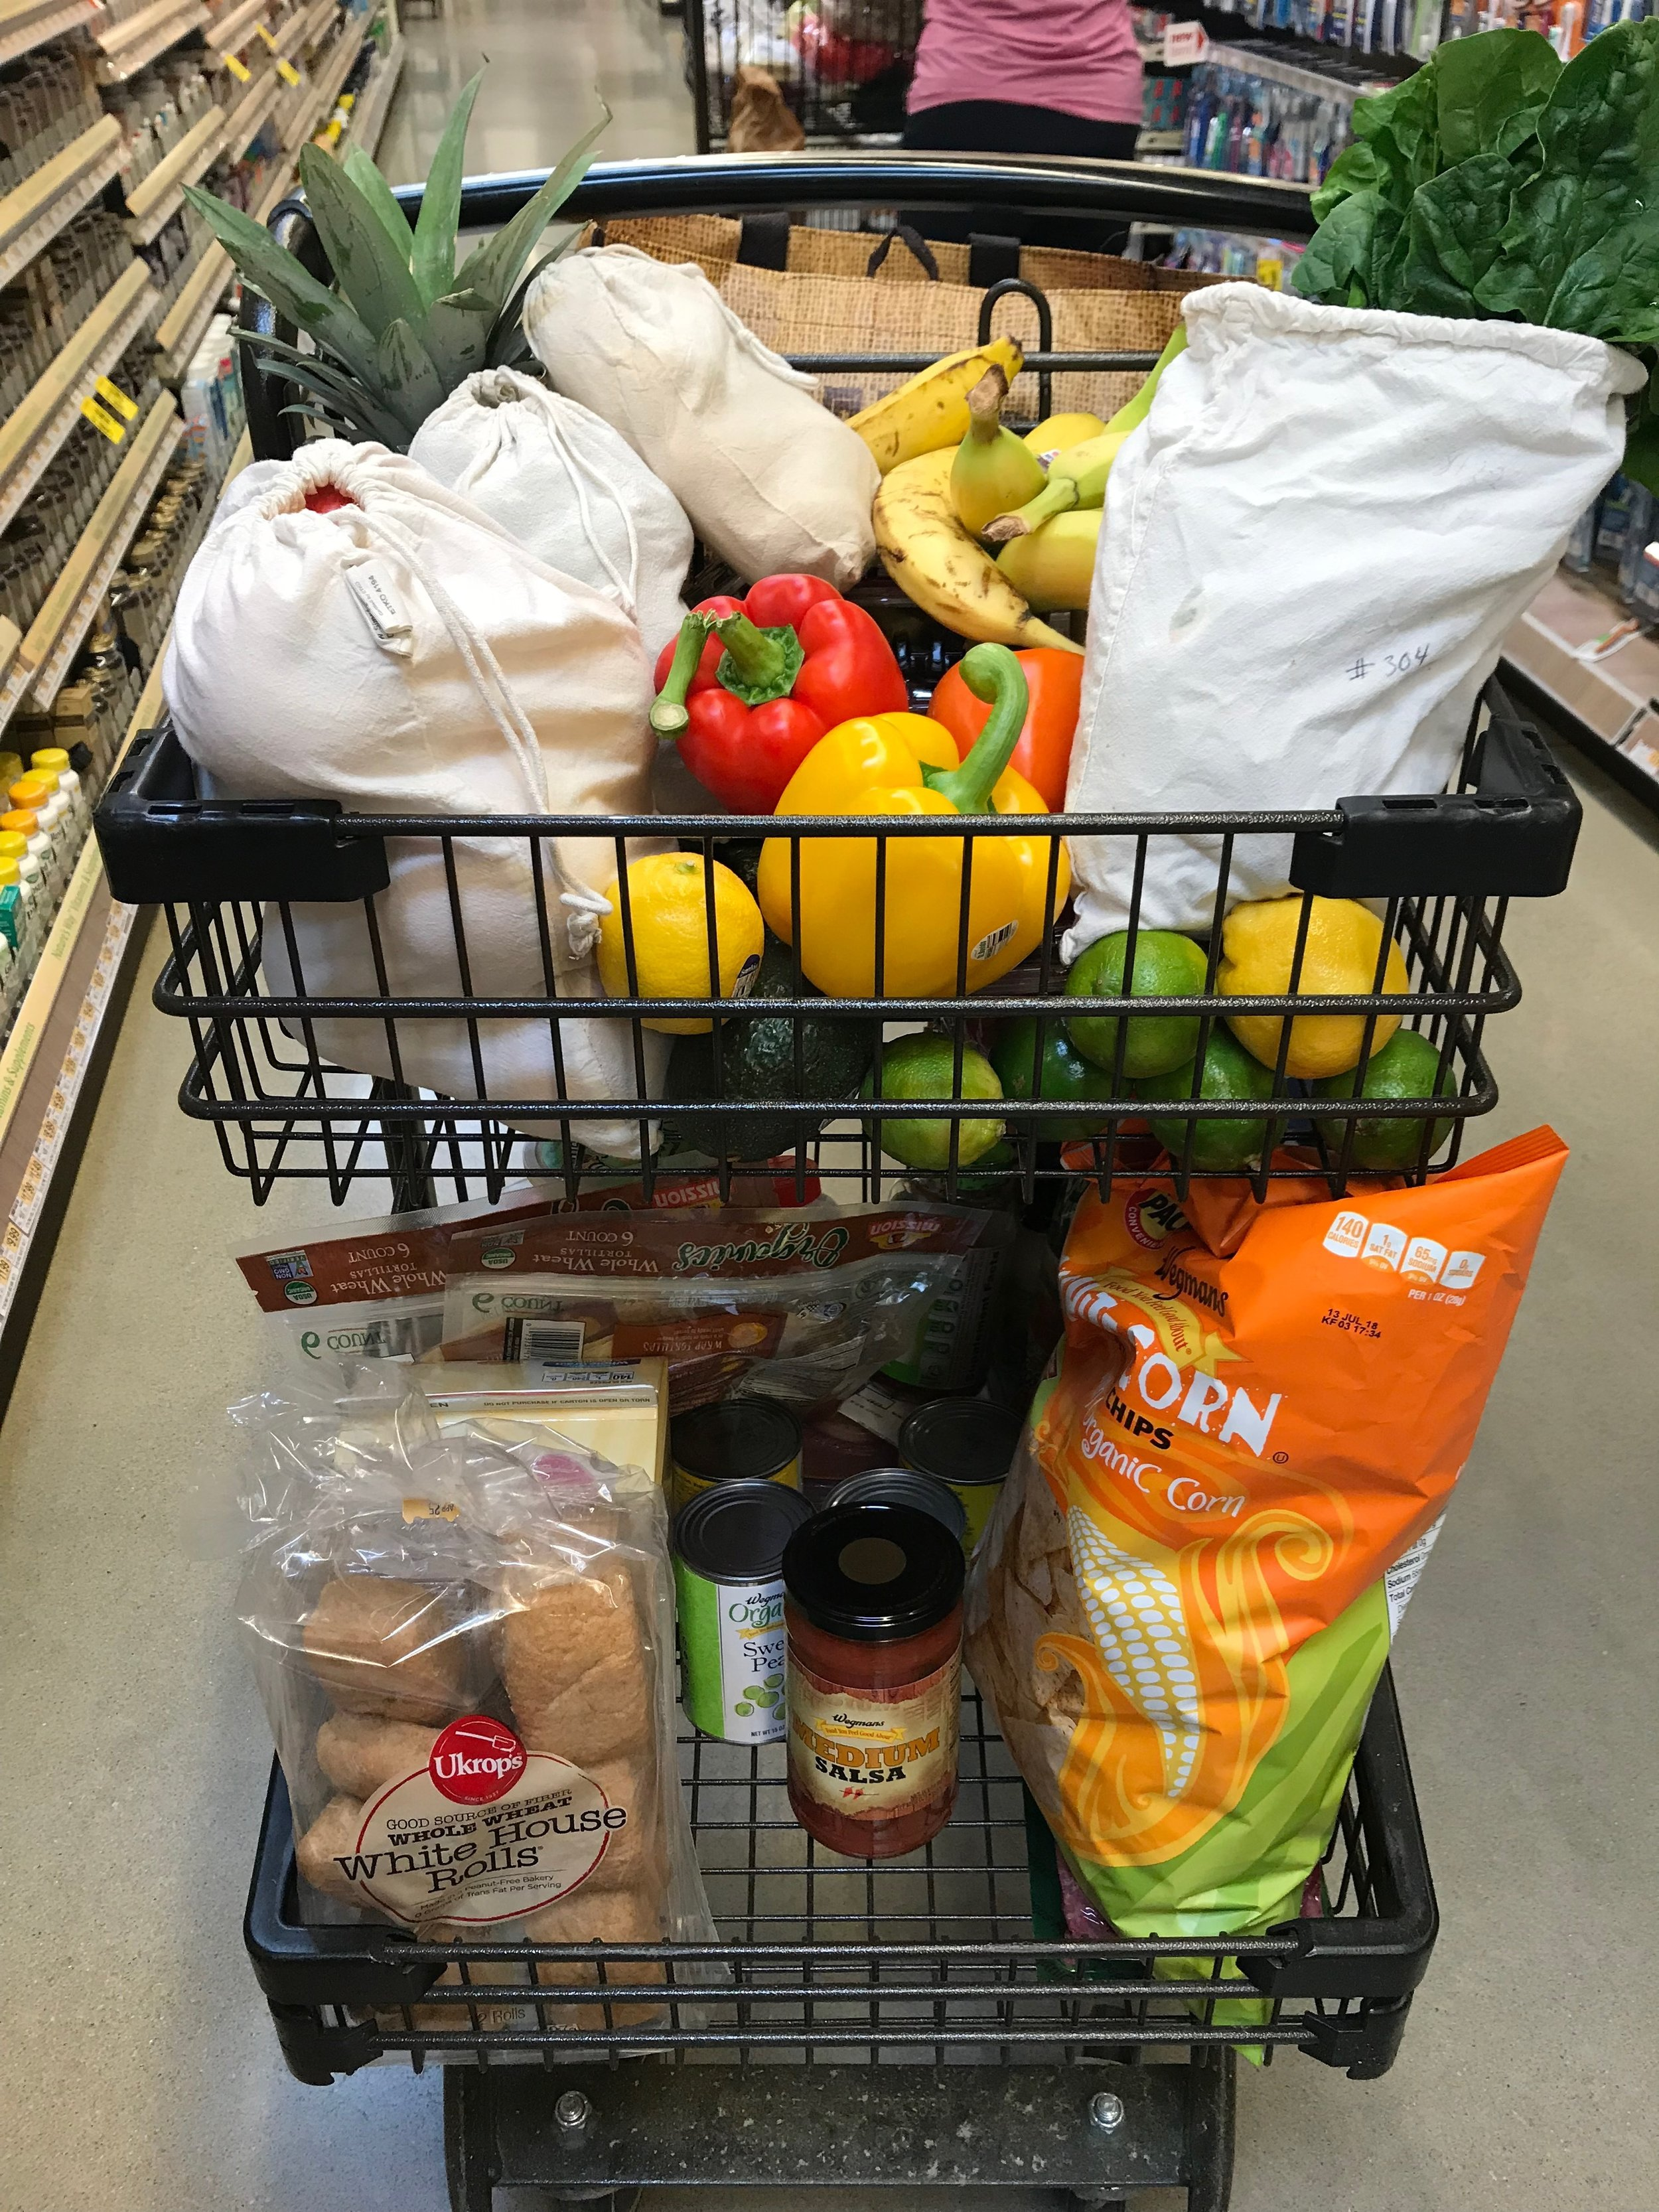 This is my actual cart. Green on top, packaged on bottom. I'm not super proud of the tortilla chips or packaged tortillas. The Rolls are made locally. Homemade tortillas and bread are amazing, but most nights dinner is not happening if I need to make it all from scratch. And, while I respect you people who cook everything on Sunday, it just isn't something that happens in my house.